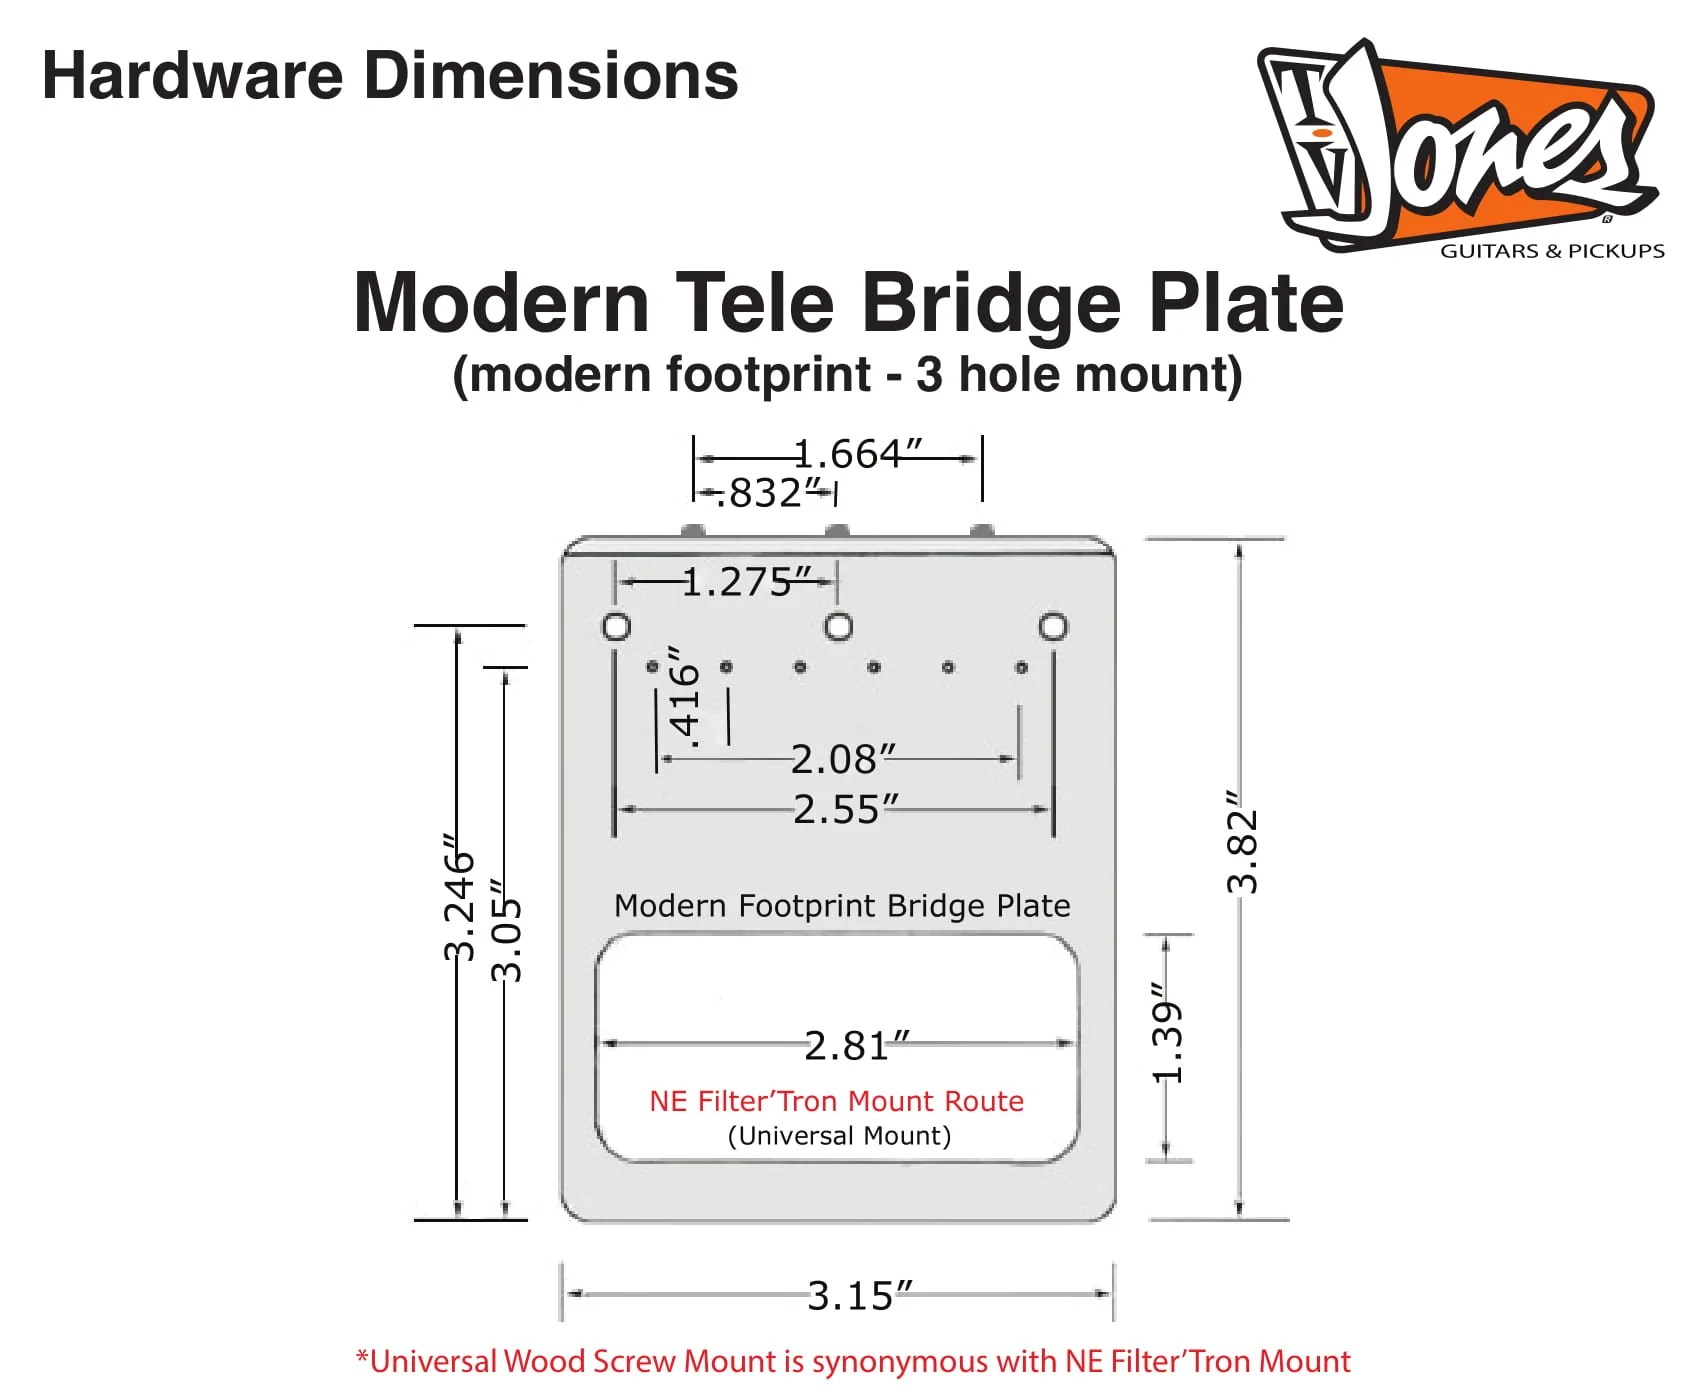 hight resolution of modern vs original the modern tele bridge plate mounts with 3 holes and the original tele bridge plate mounts with 4 holes